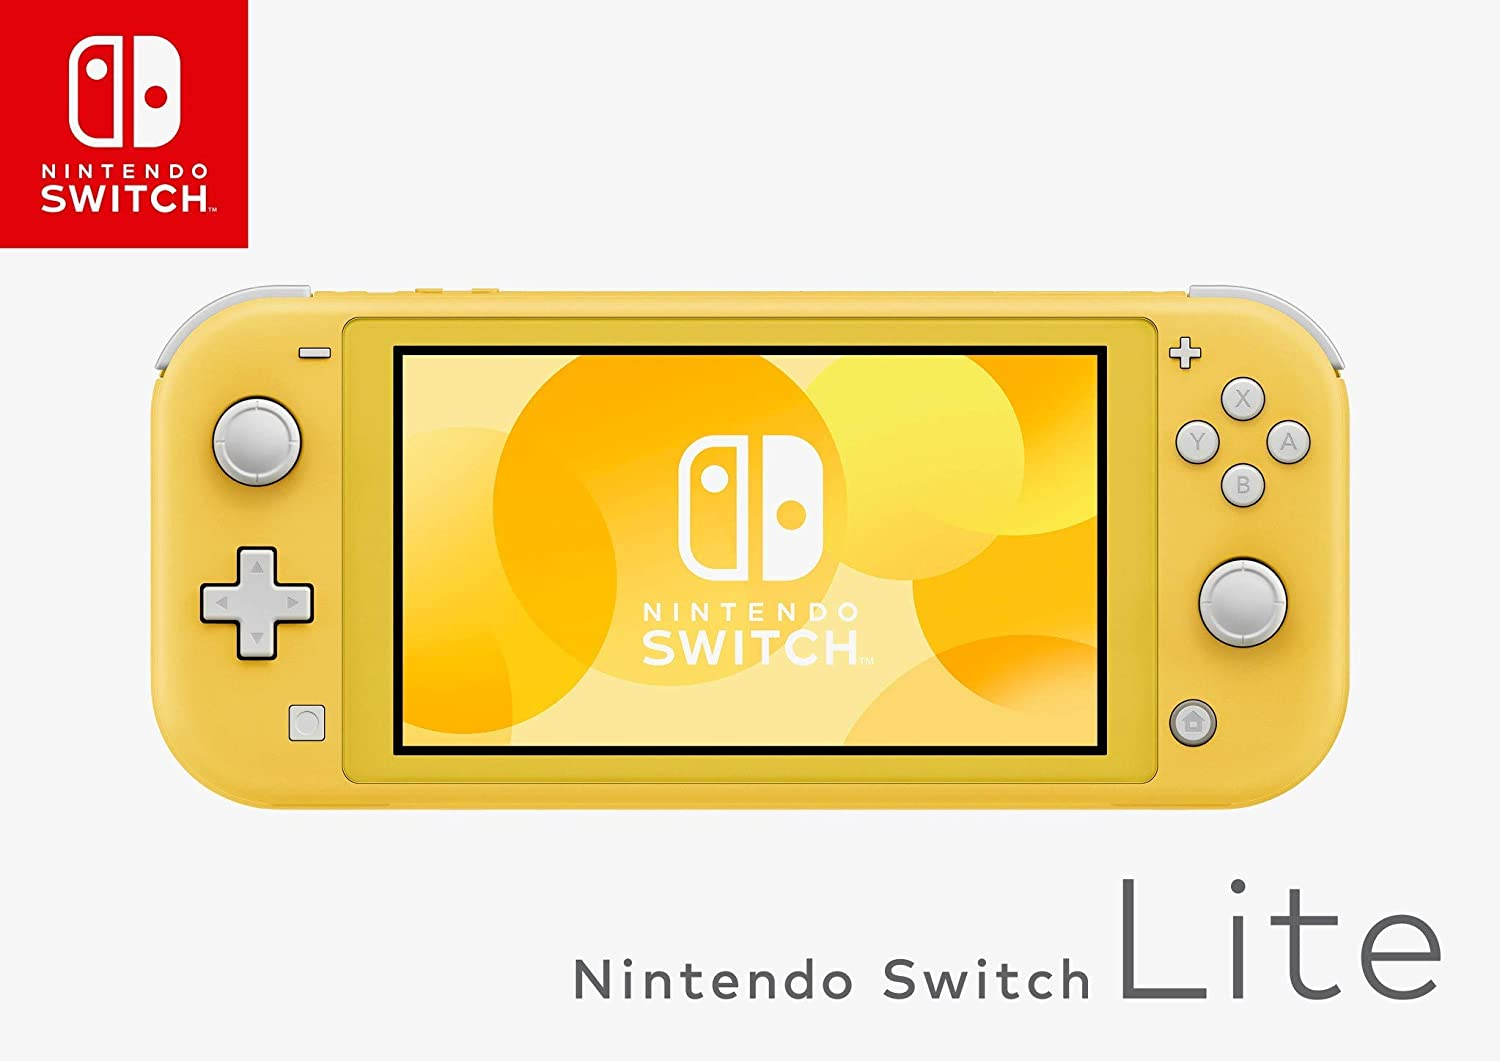 Nintendo Switch Lite – Consola color Amarillo, Edición Estandar